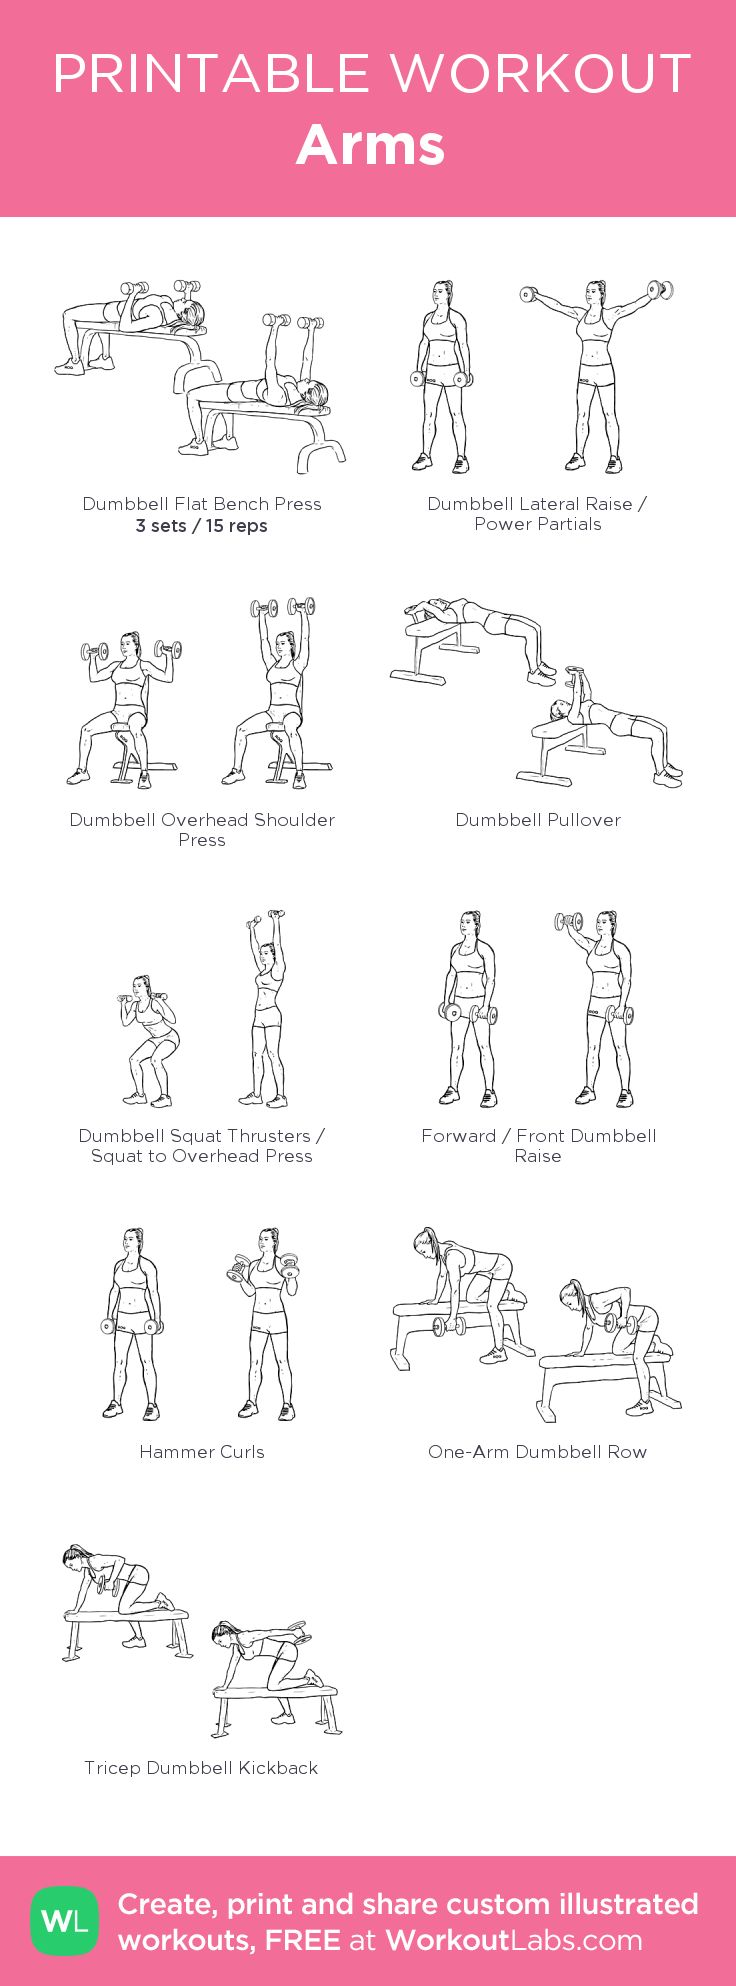 Arms : my visual workout created at WorkoutLabs.com • Click through to customize and download as a FREE PDF! #customworkout